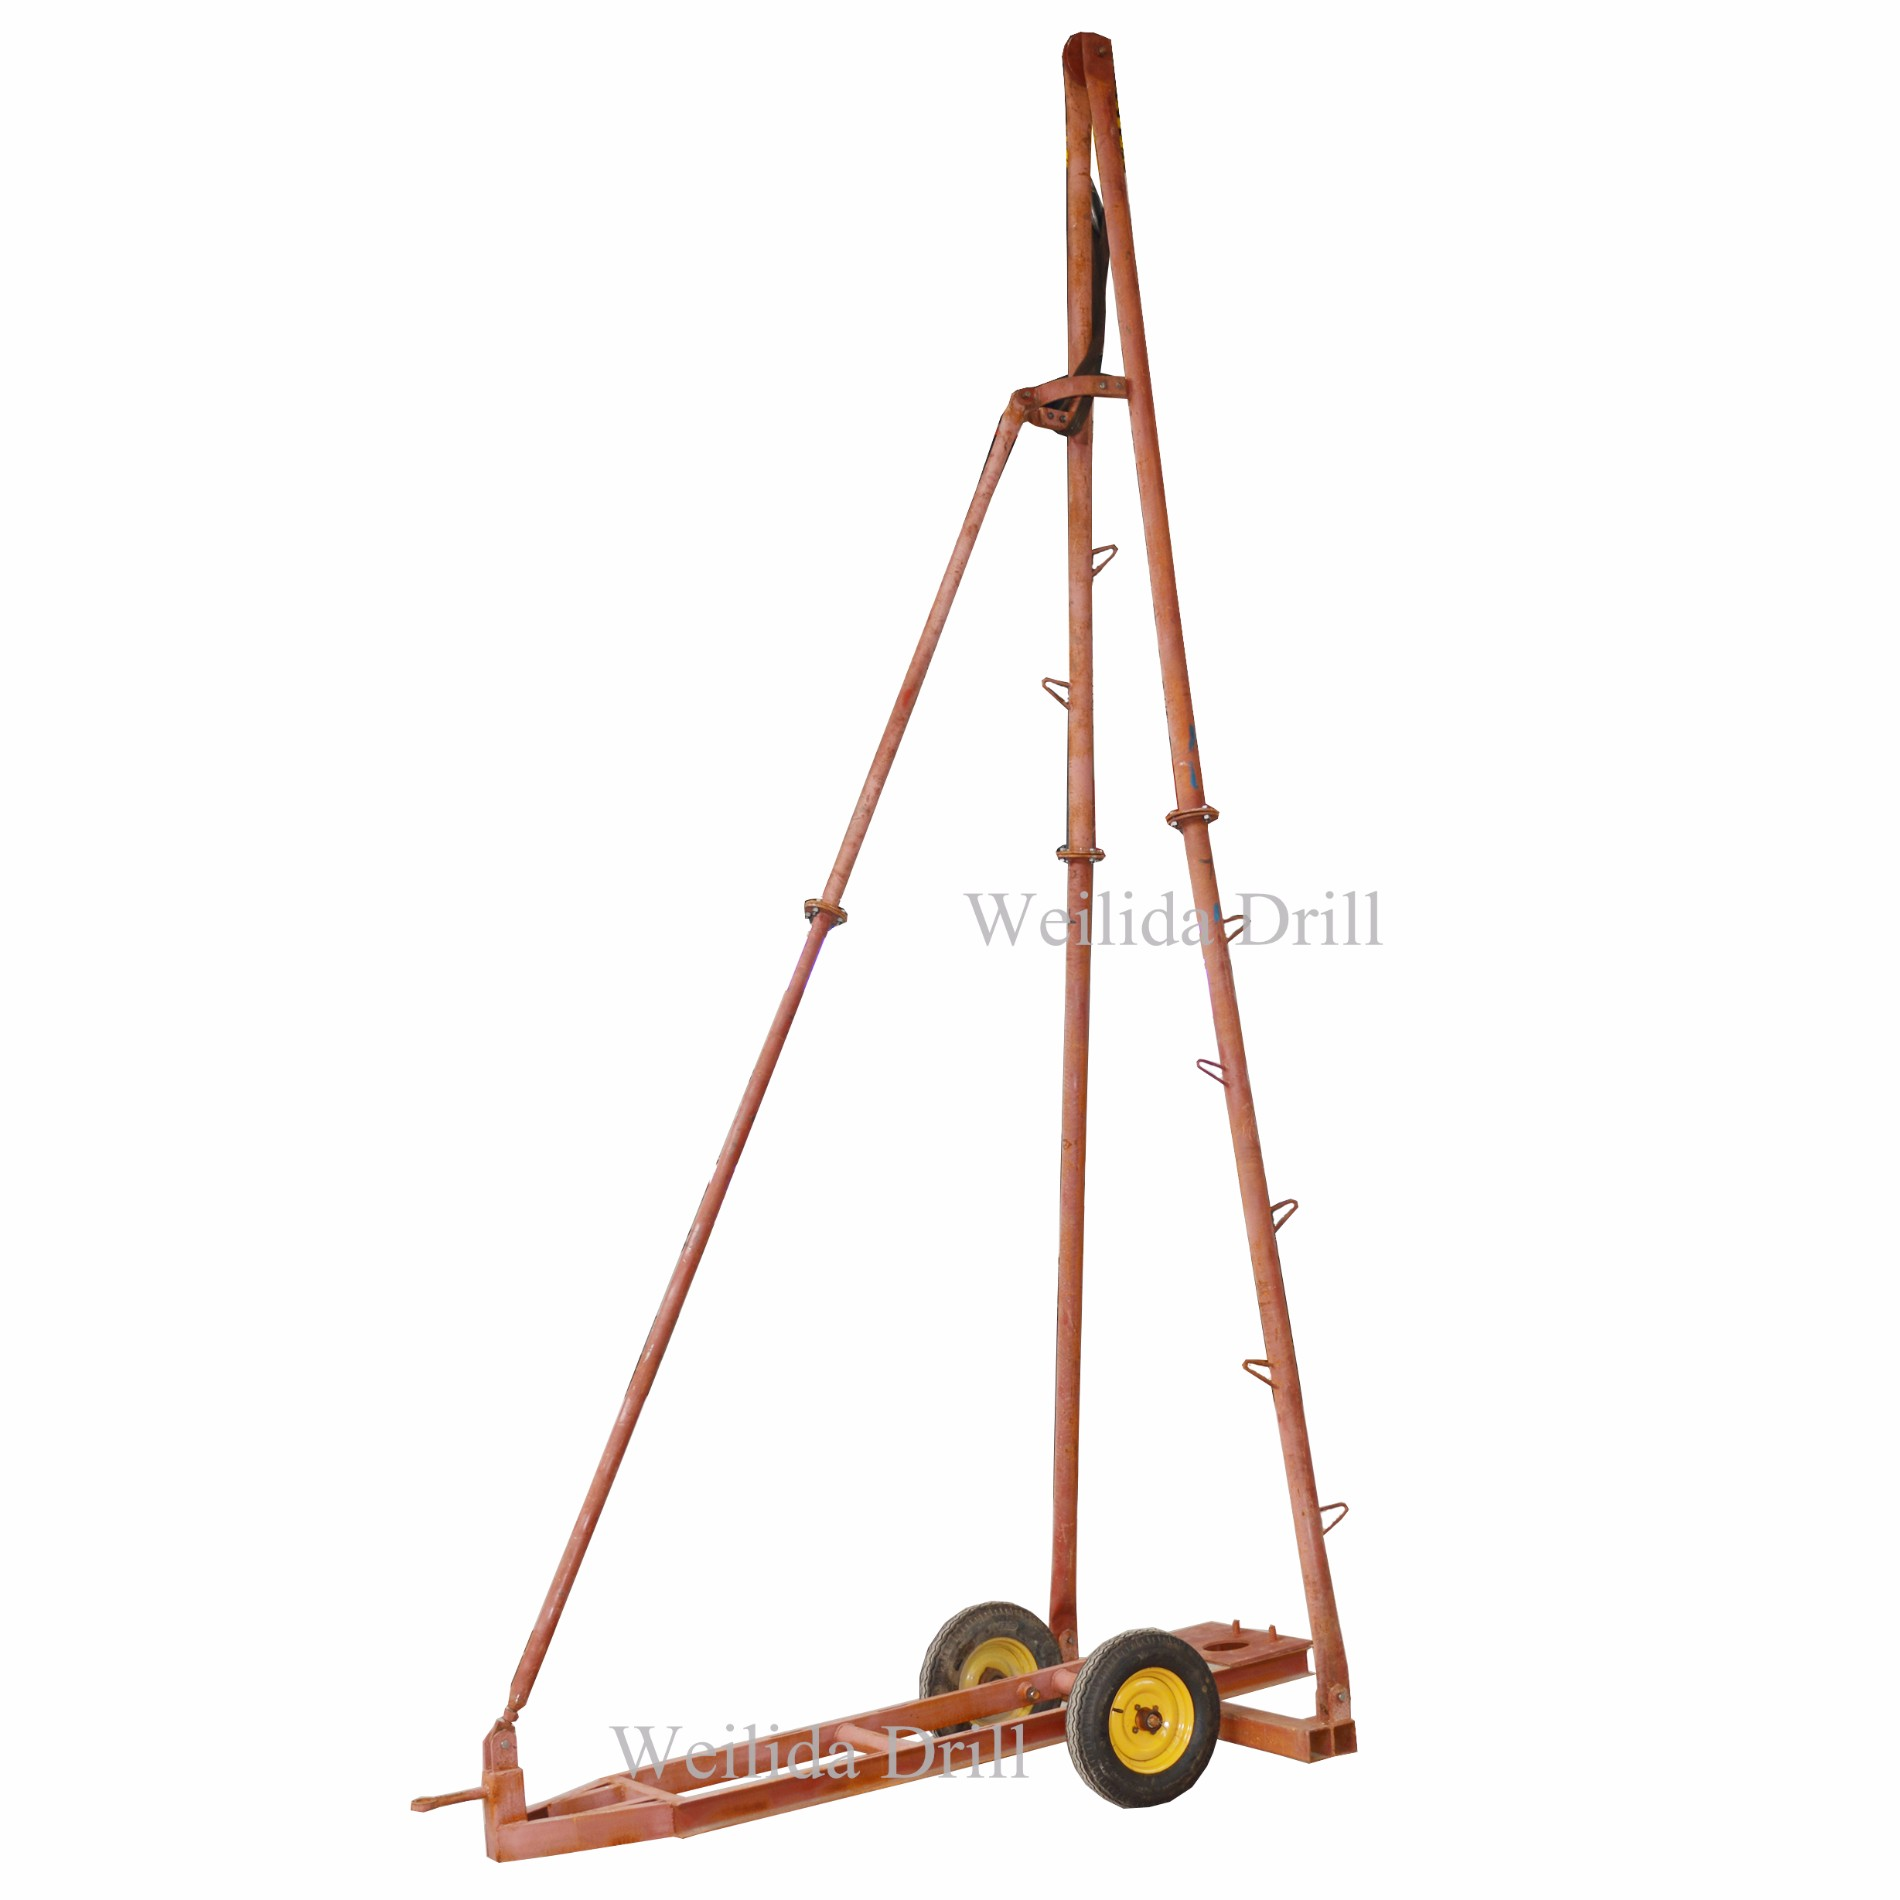 Sales three feet drill tower, China 6m drill tower, 4 5m drill tower drill tower Factory